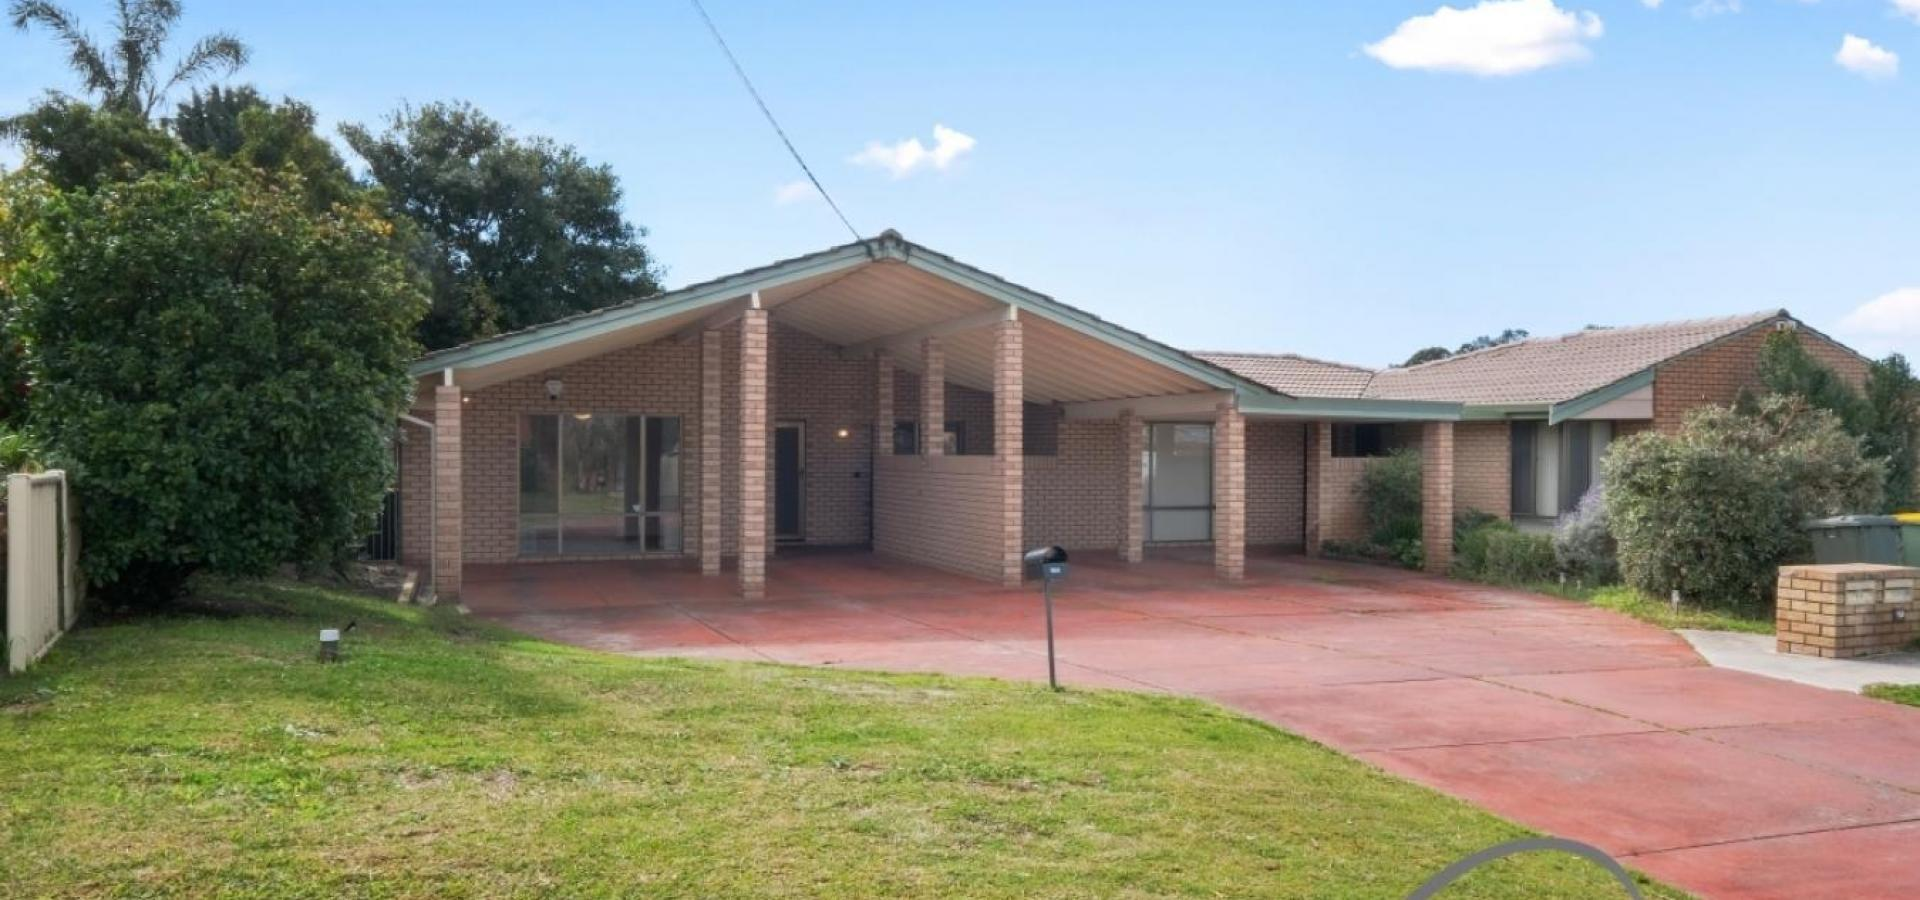 SURVEY STRATA 3x1.5 DUPLEX NEXT TO WILLETTON SENIOR HIGH!!